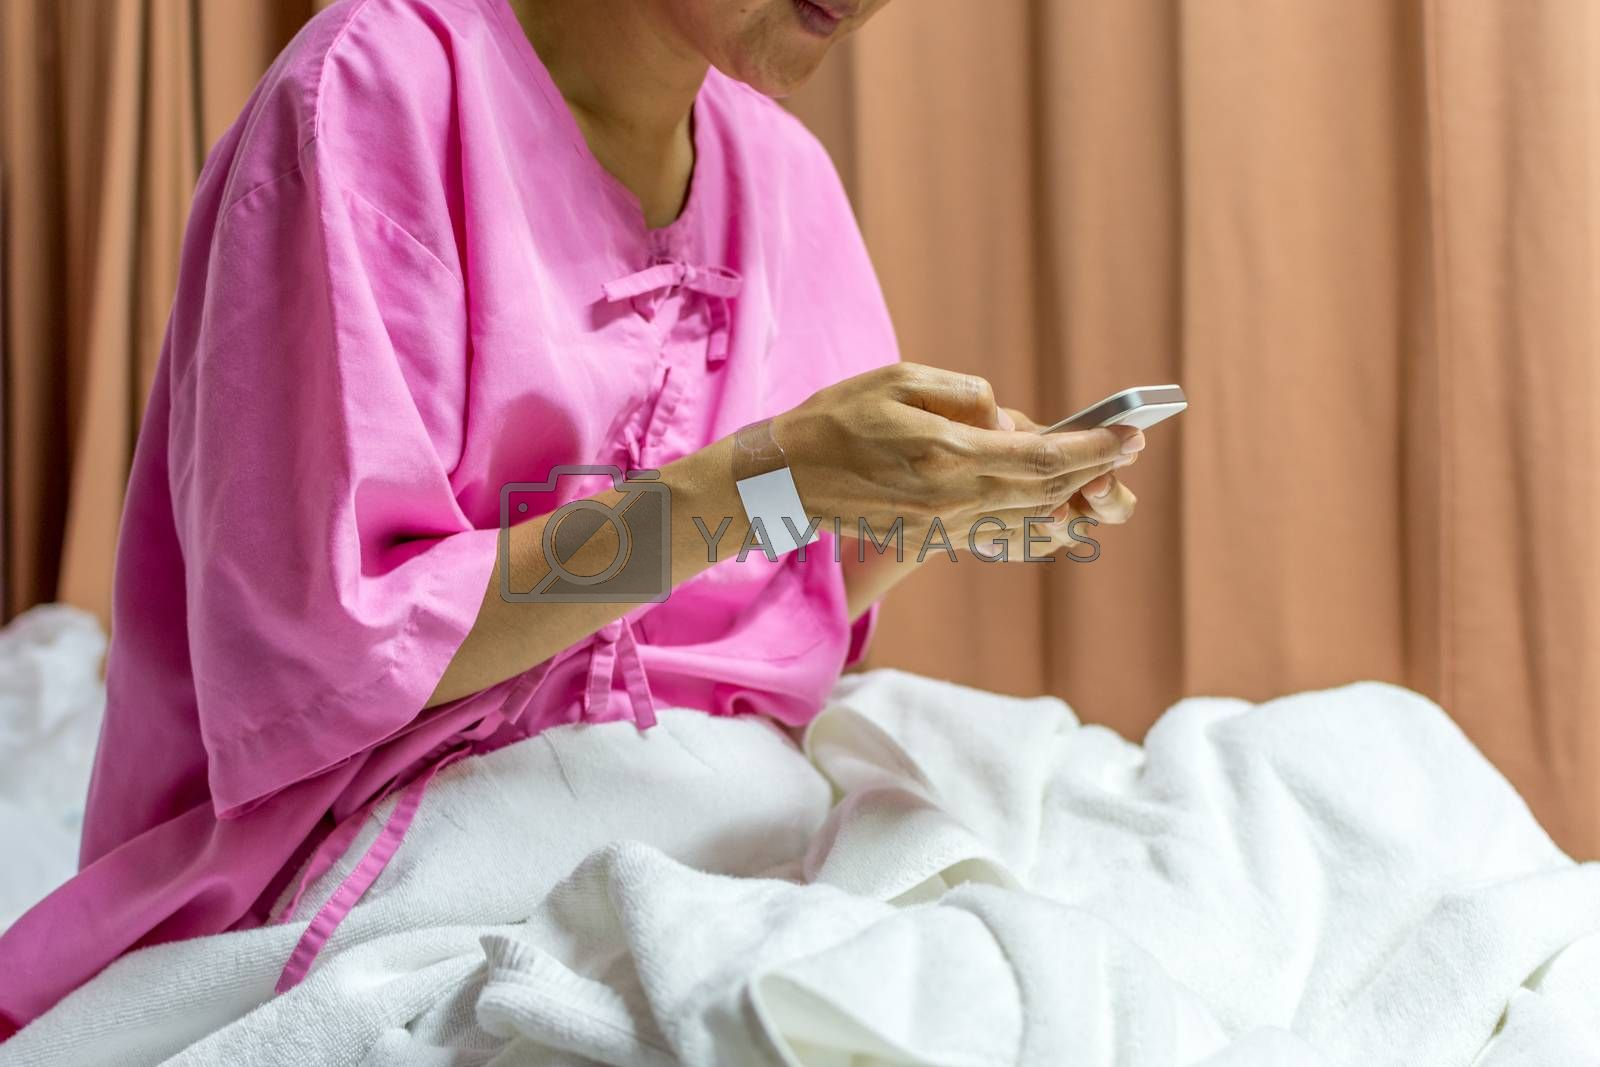 Patient asian woman with adhesive plaster on hand using smartphone for internet communication on patient bed in the hospital